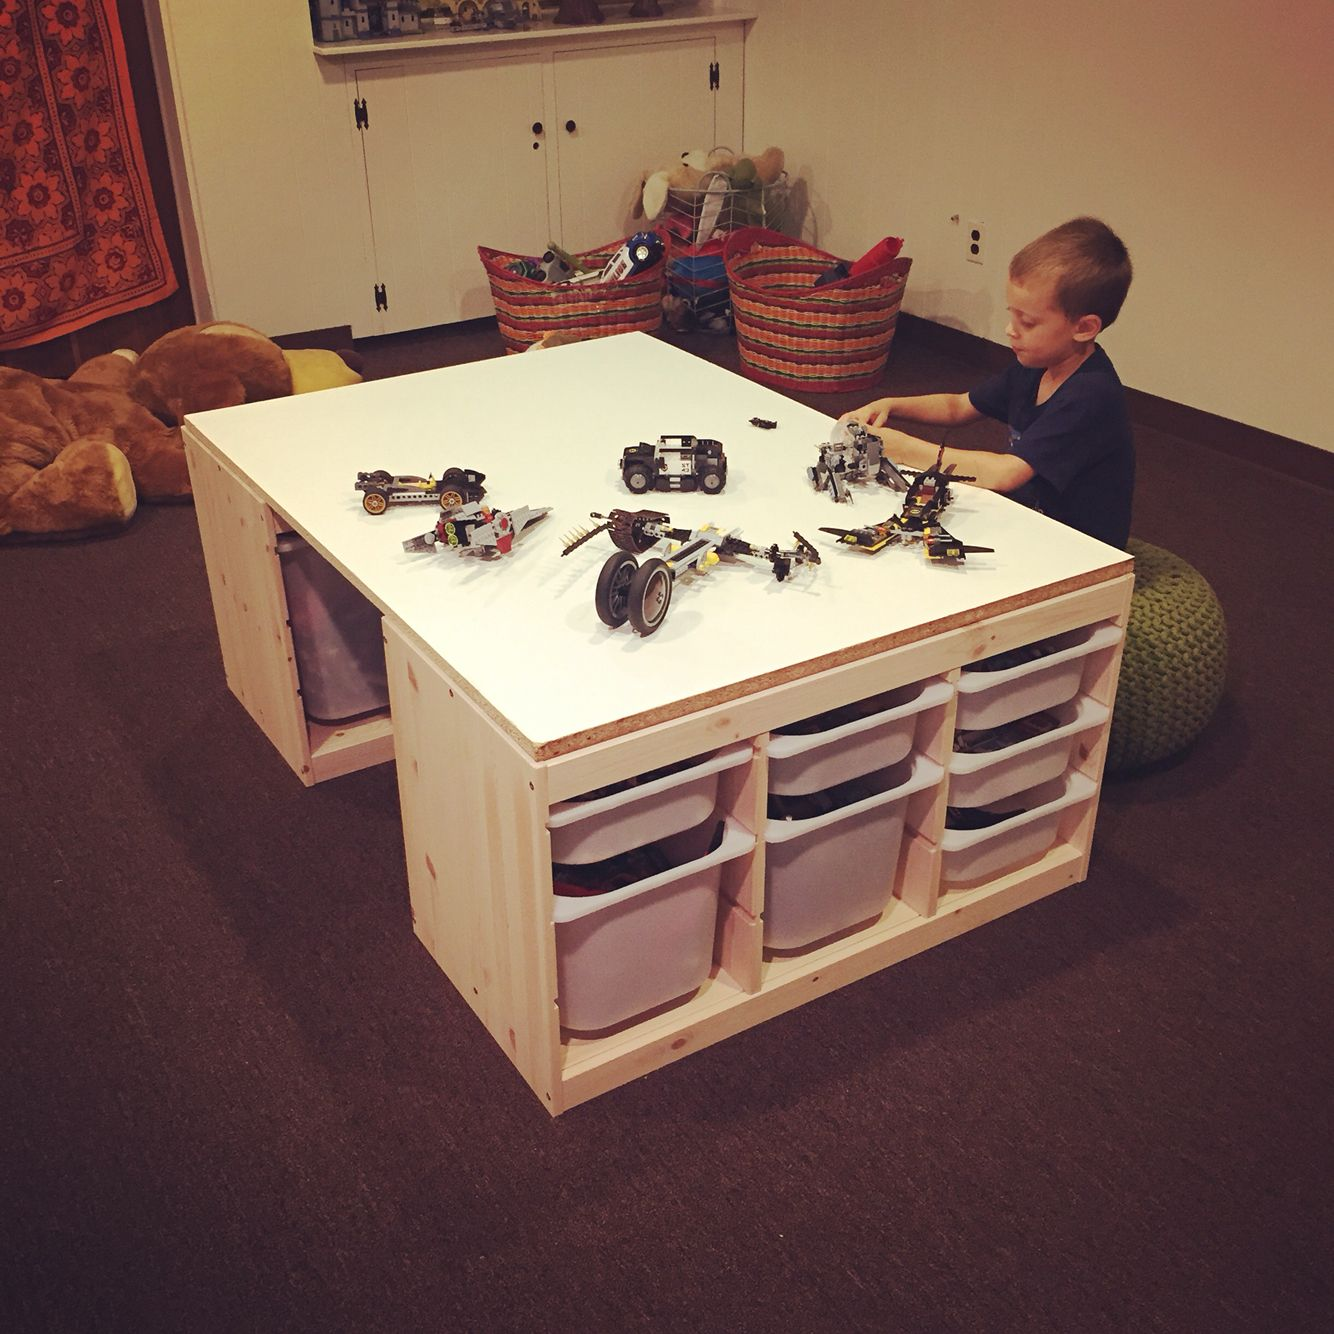 diy lego table made with 2 ikea trofast storage units and a custom cut mdf board total cost. Black Bedroom Furniture Sets. Home Design Ideas